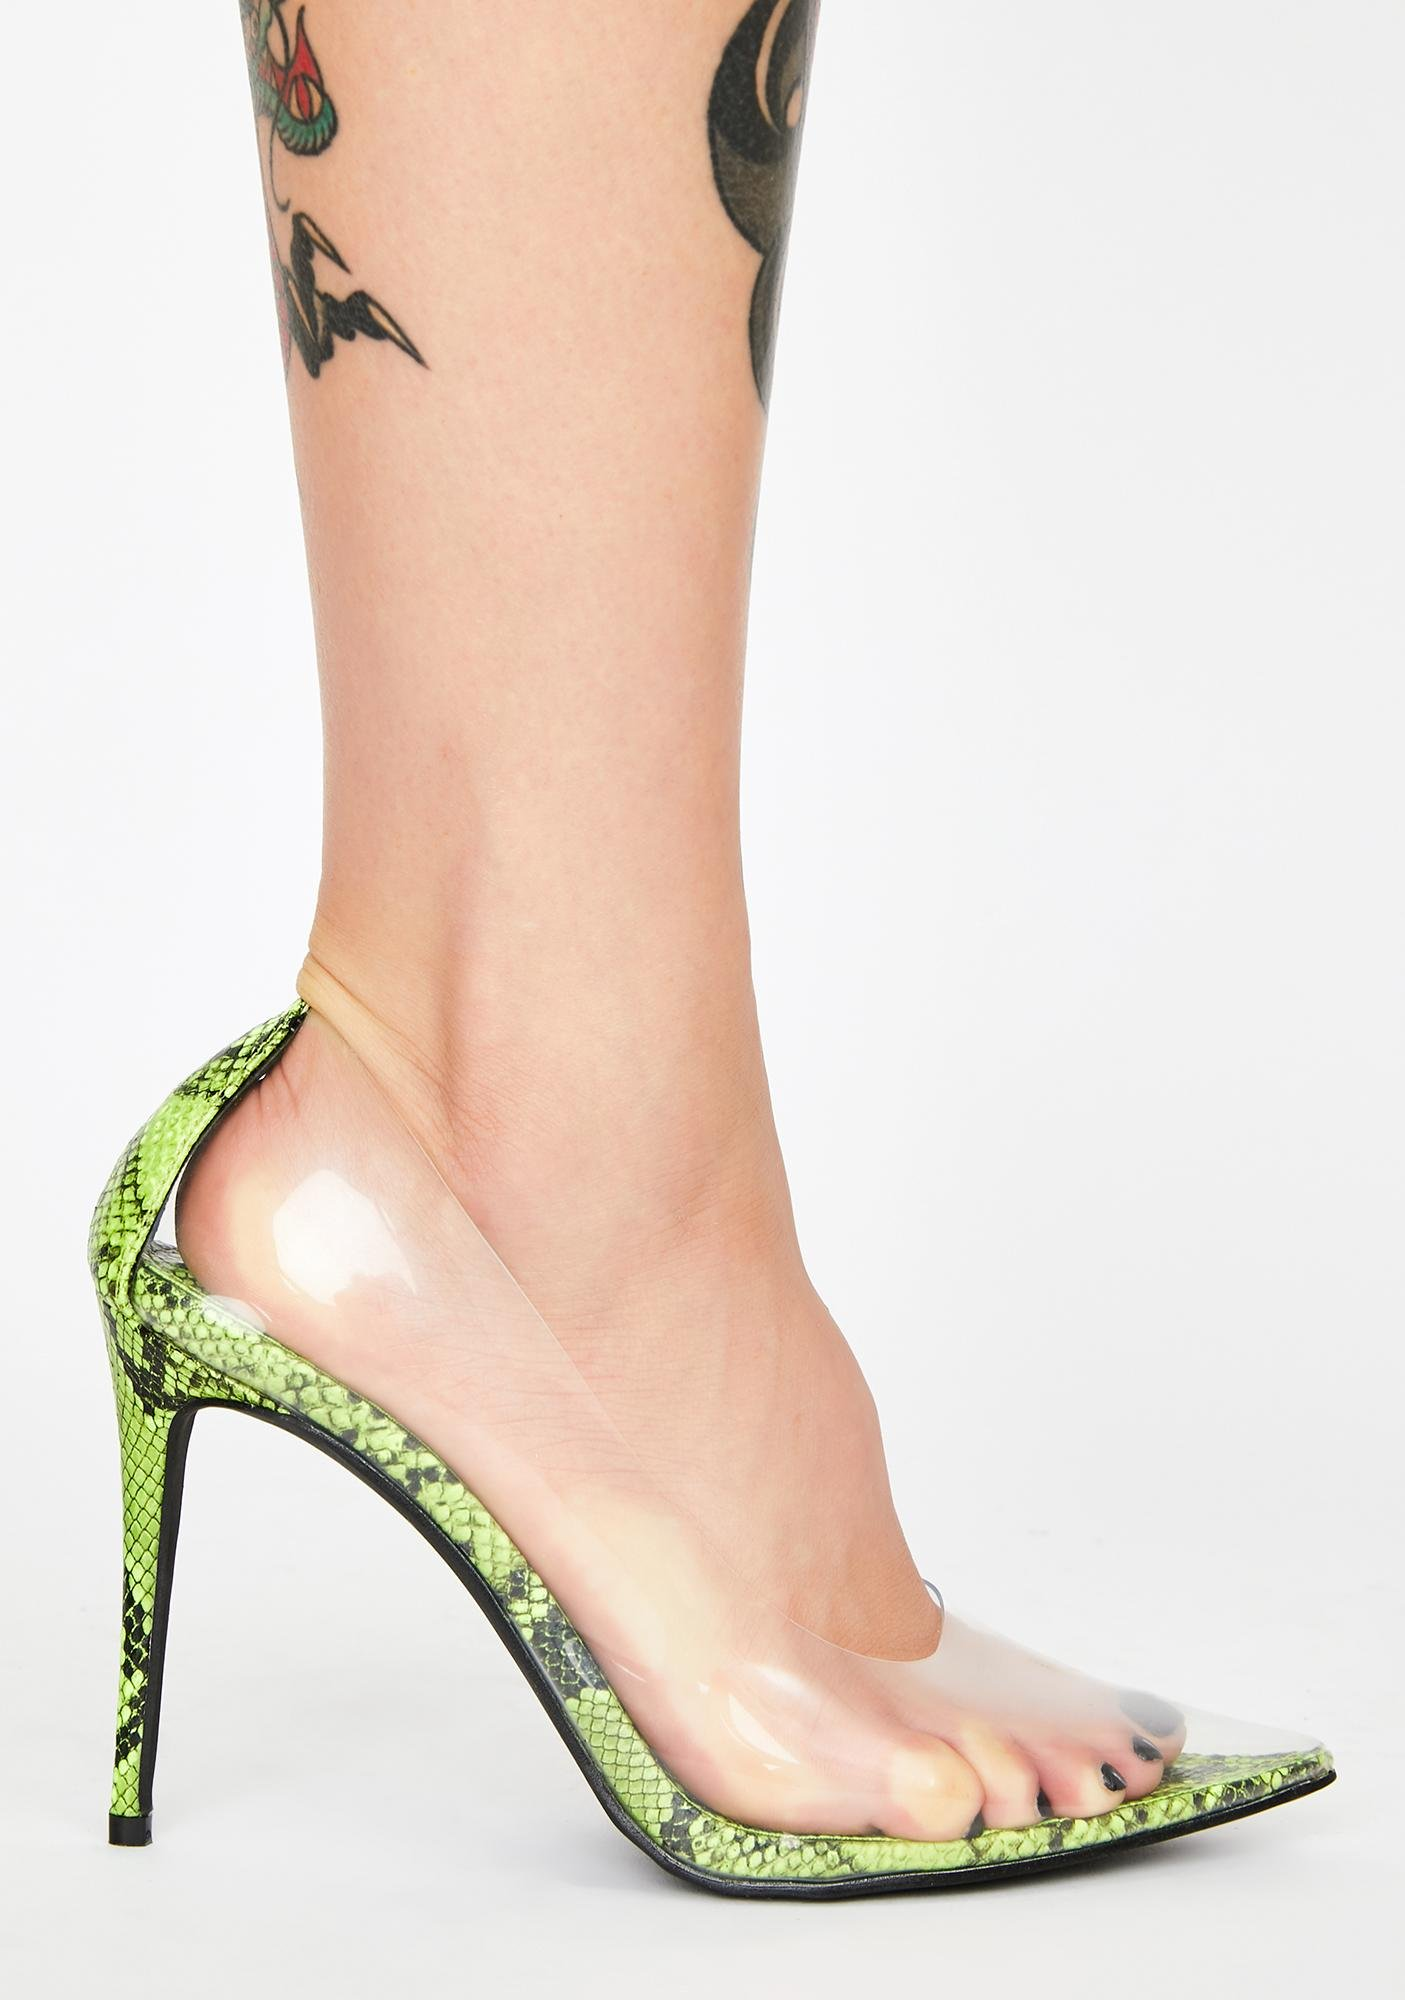 Serpent Clearly Feisty Snakeskin Pumps